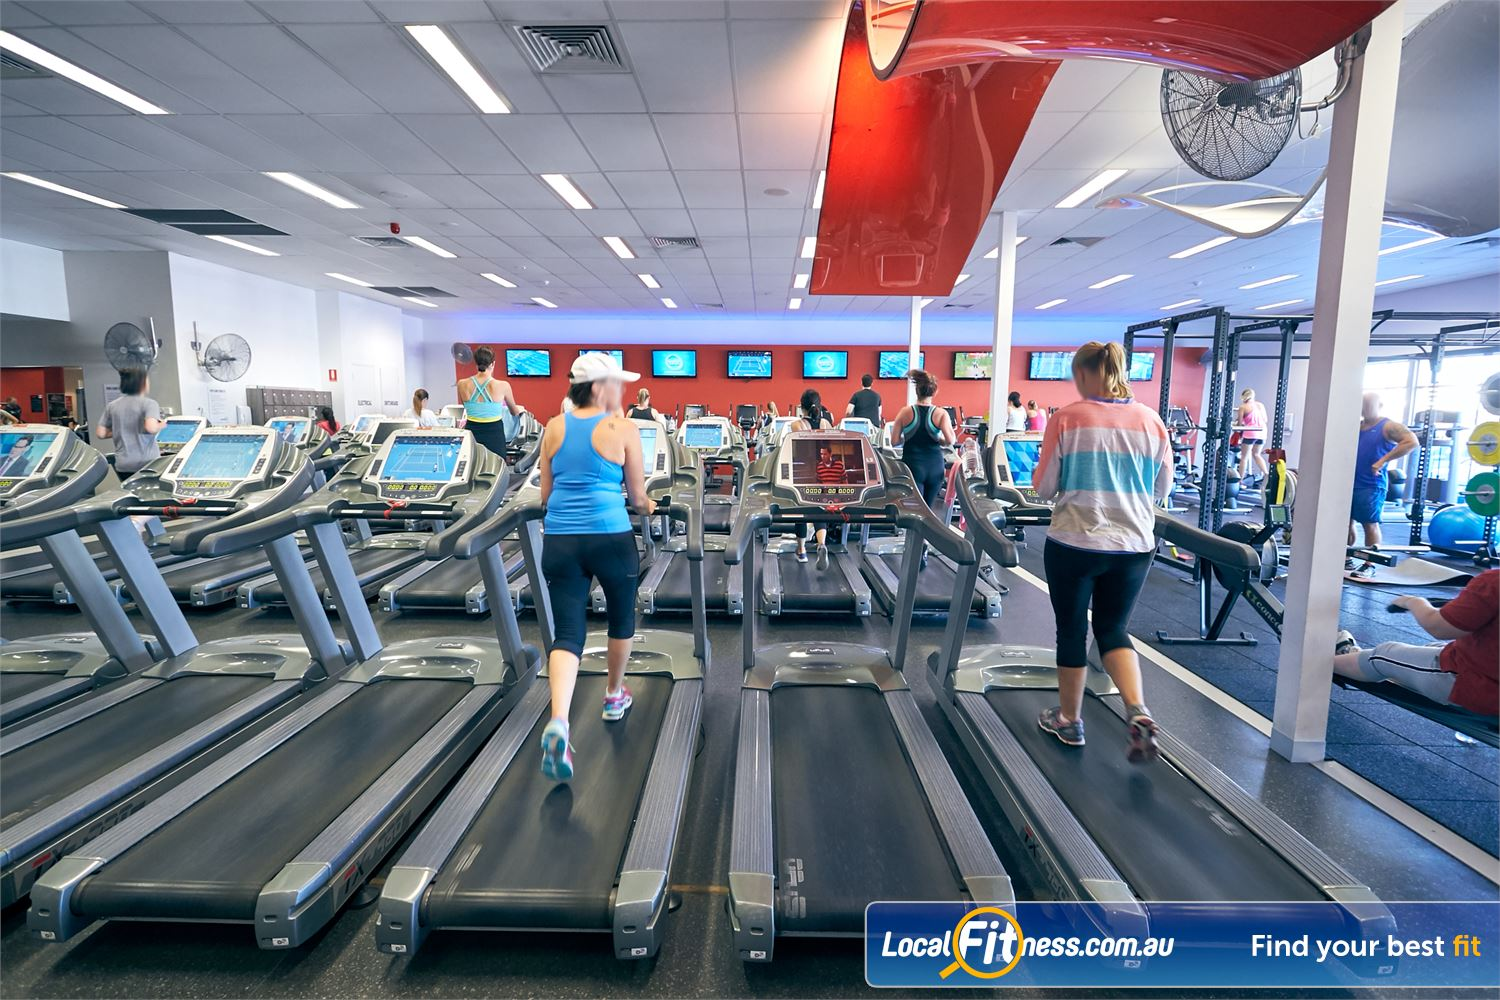 Goodlife Health Clubs Cross Roads Near Lower Mitcham Our Westbourne Park gym facilities include the latest Stex cardio with in-built LCD and iPod connectivity.